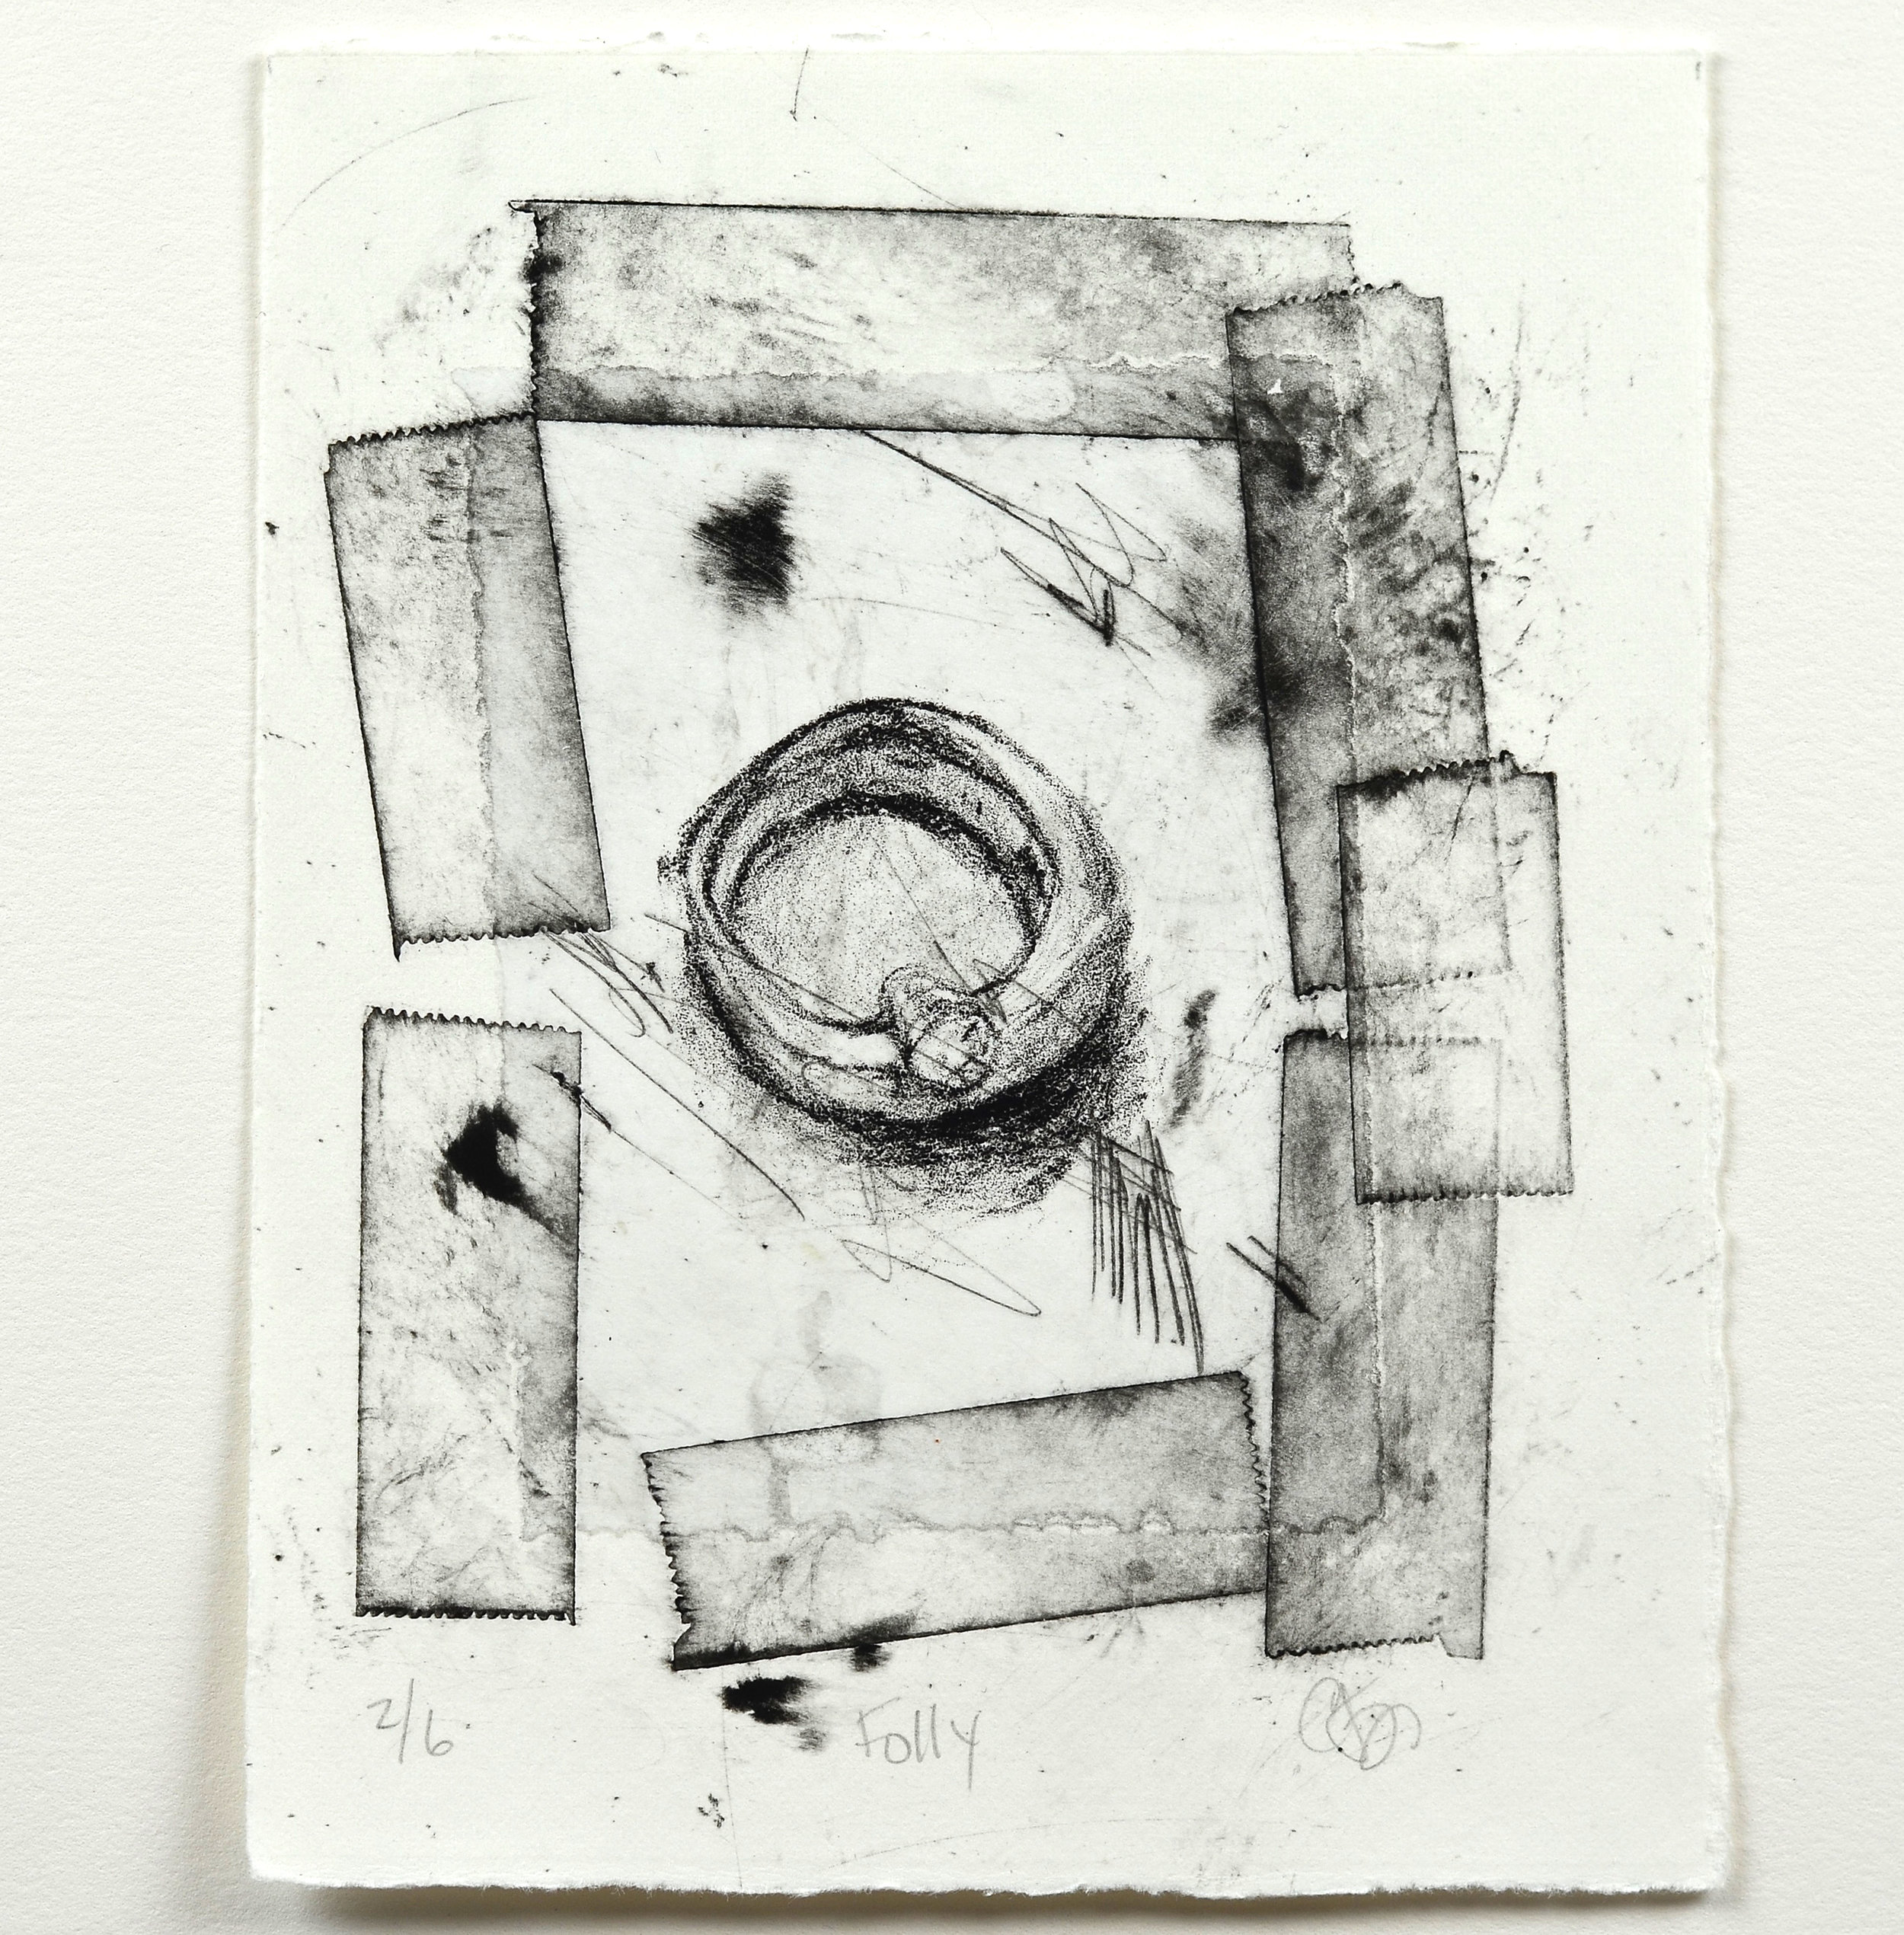 Christine Fry    Folly   Lithograph, chine colle, collagraph